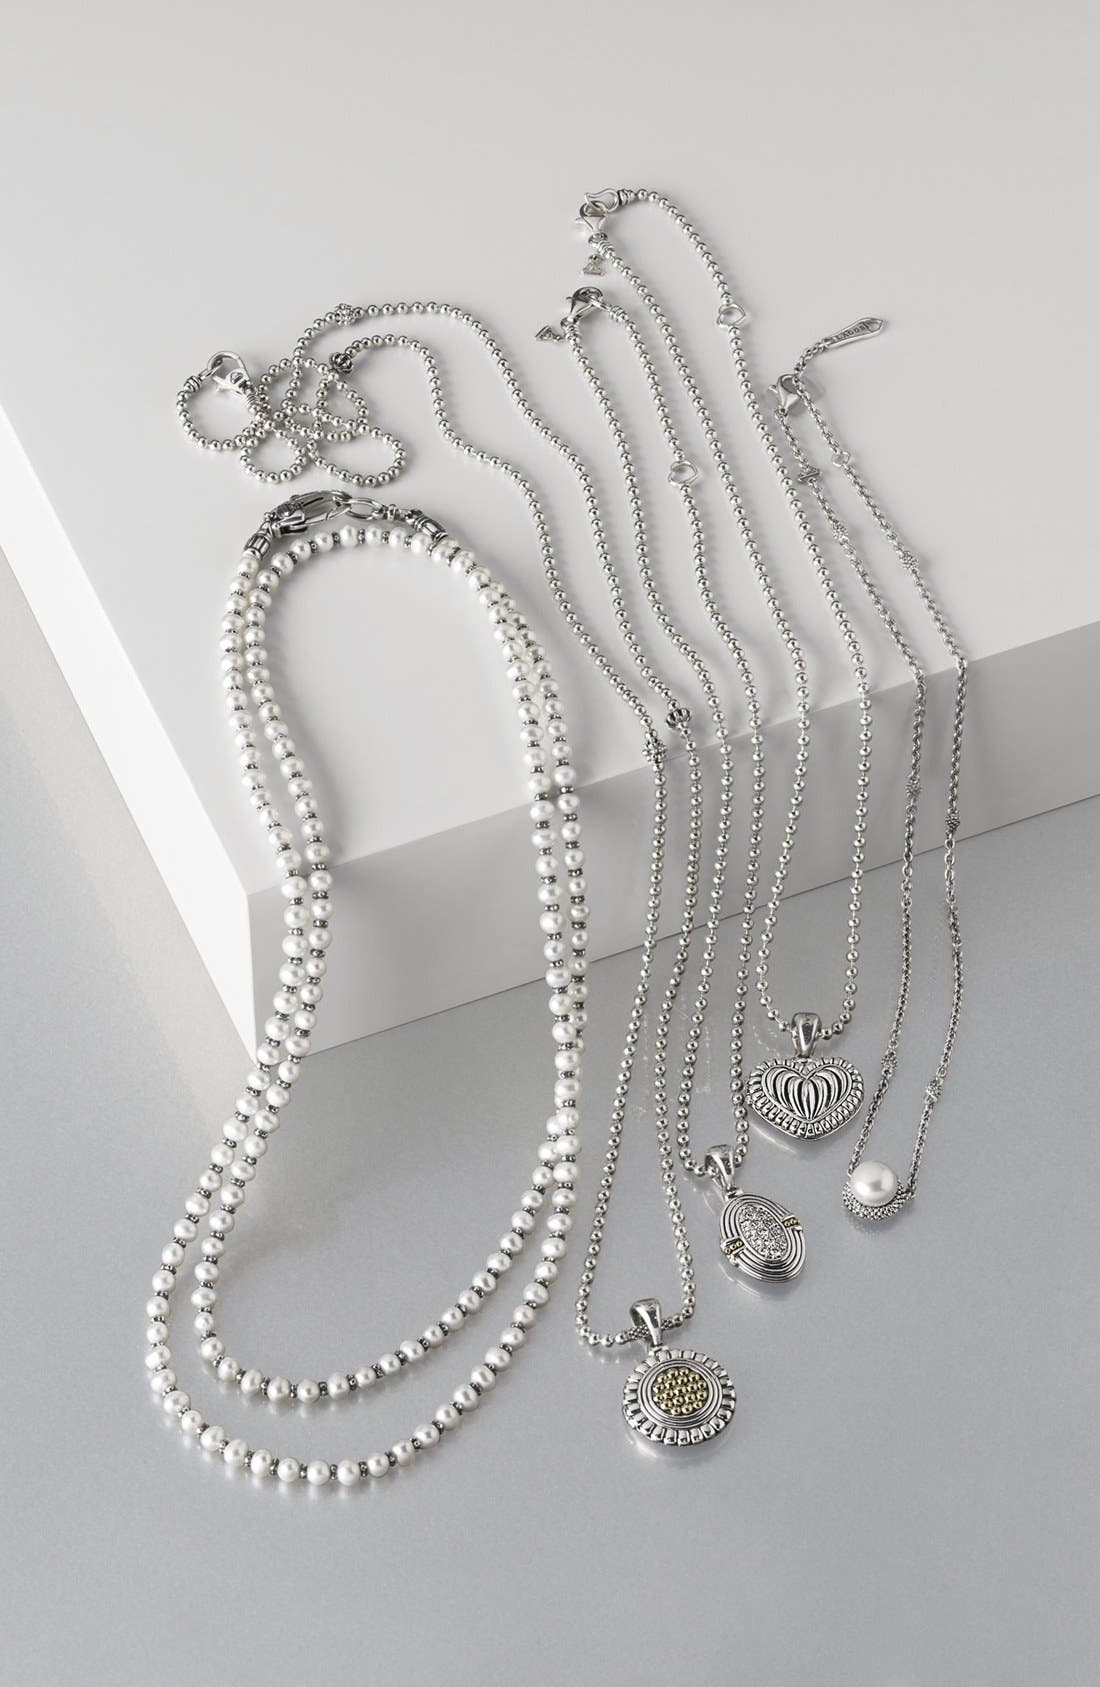 'Luna' Long Micro Bead & Pearl Necklace,                             Alternate thumbnail 5, color,                             SILVER/ PEARL